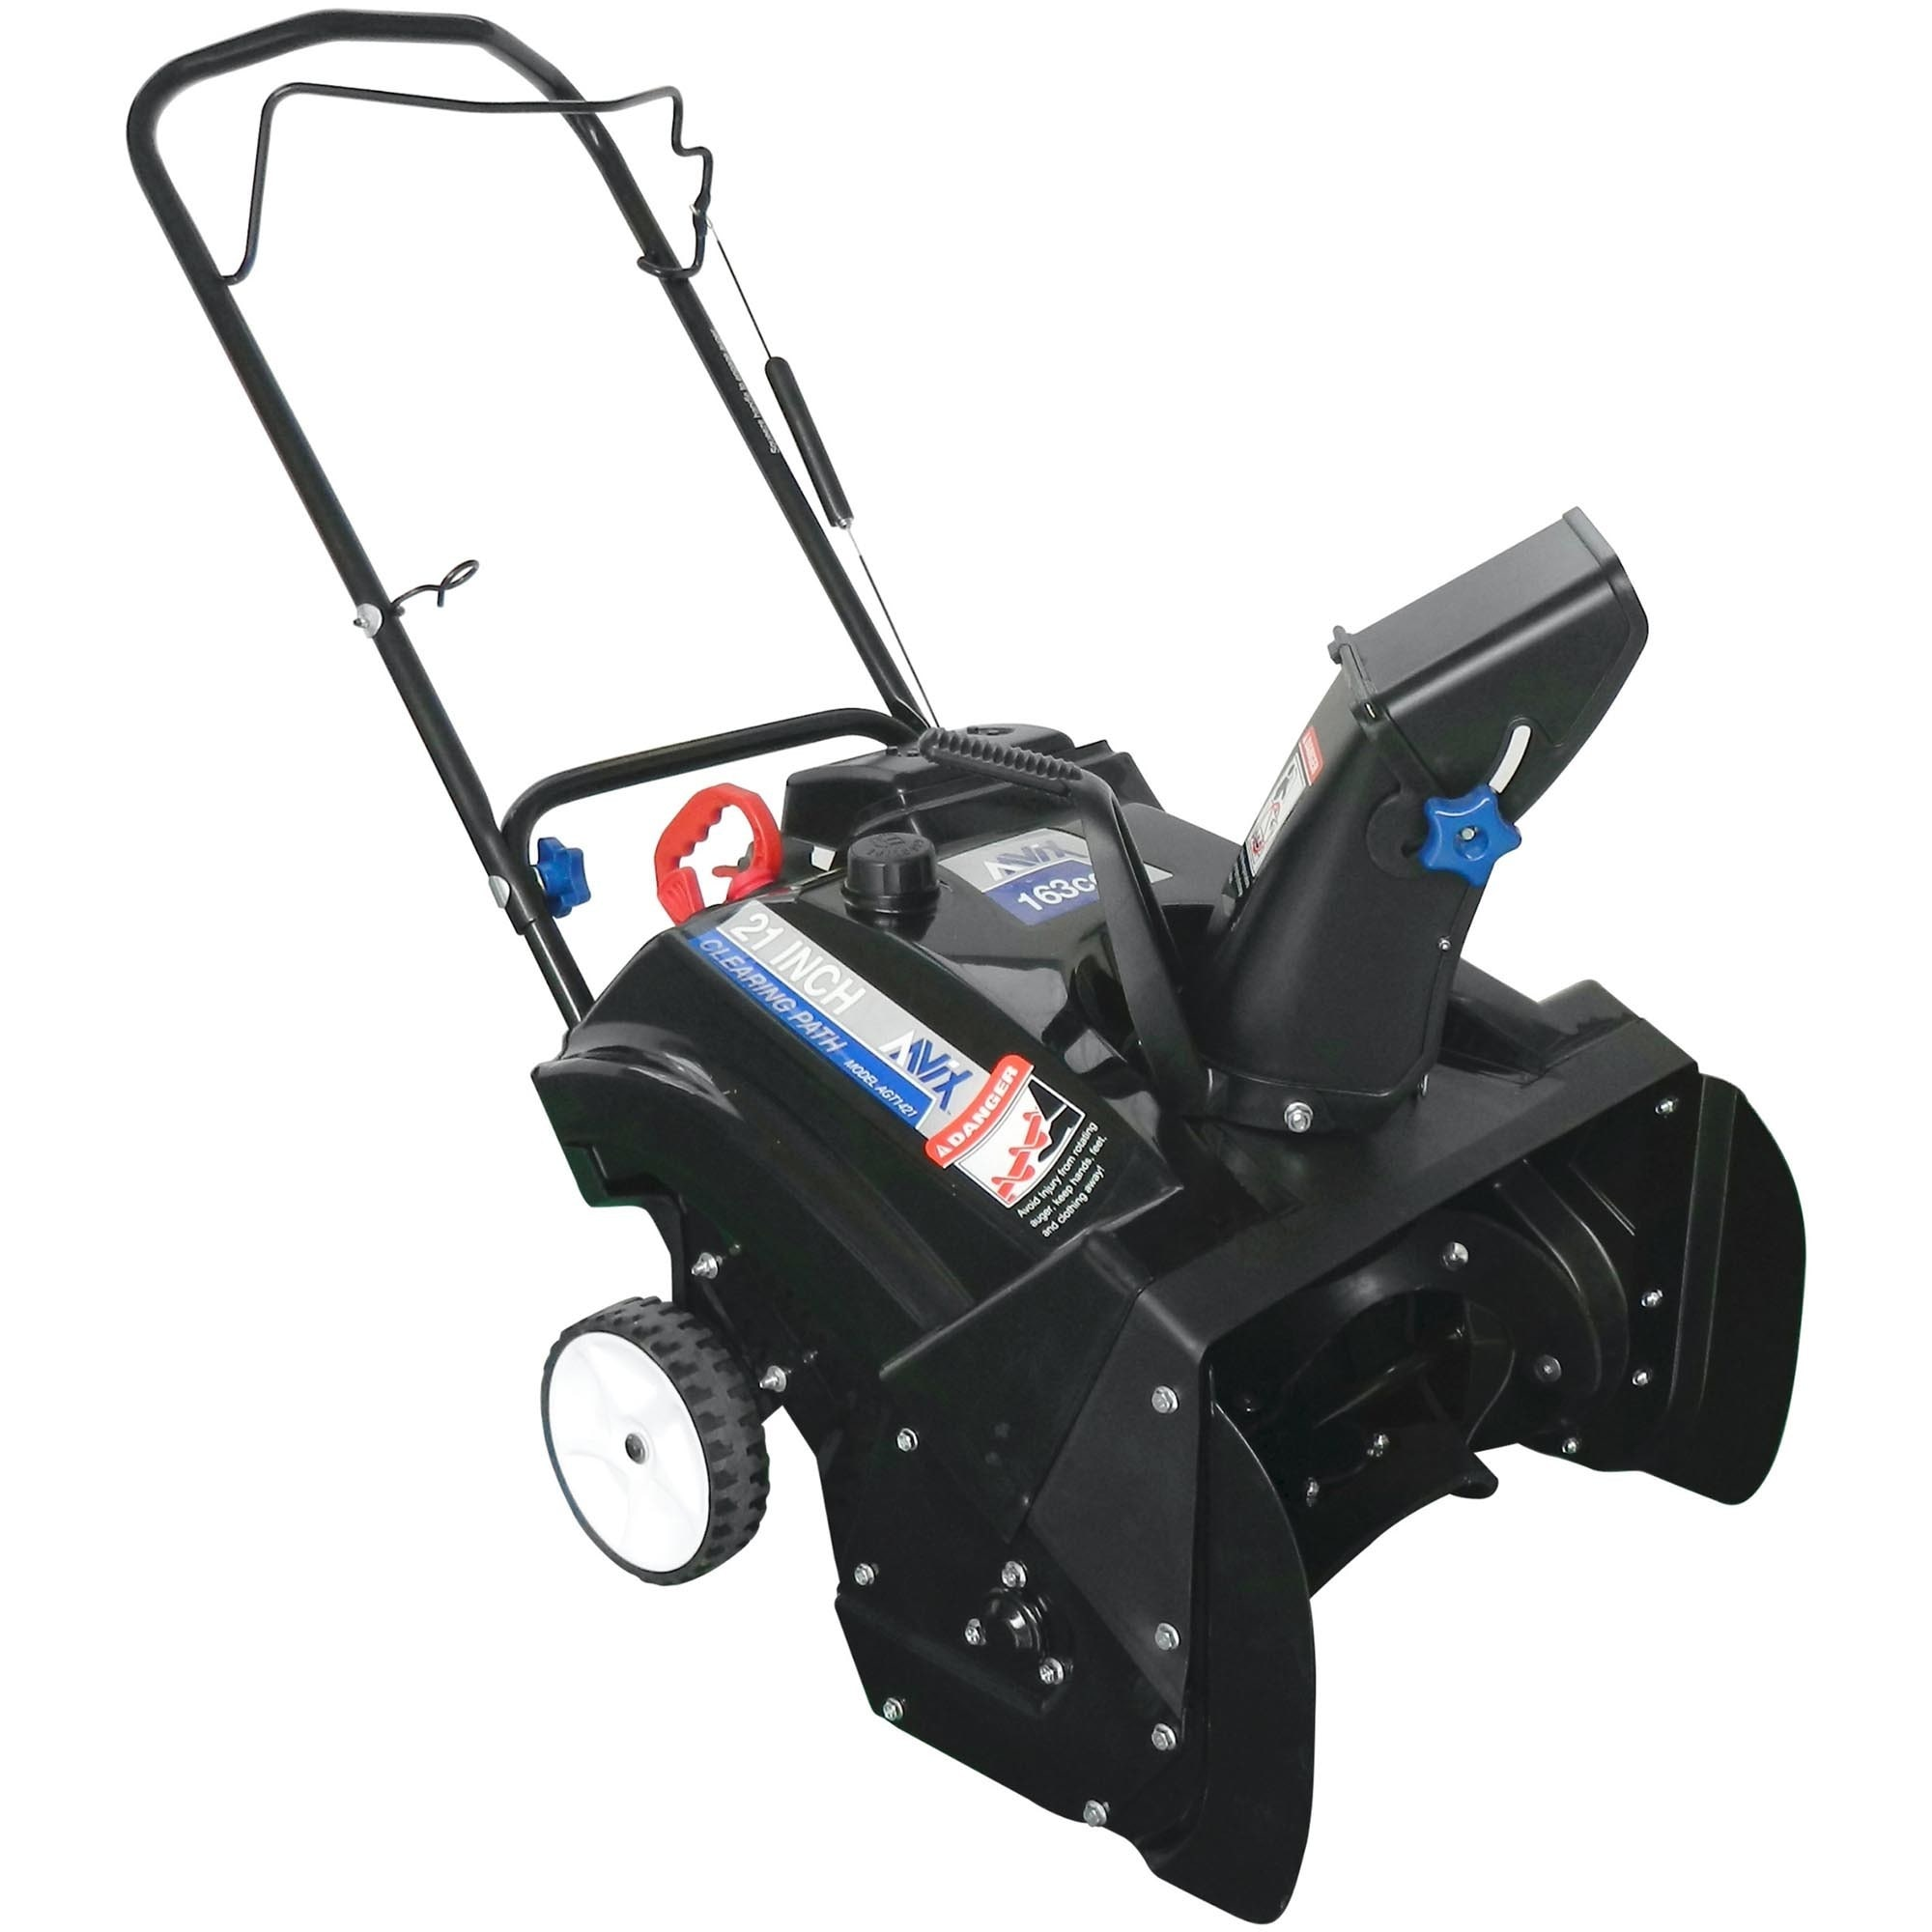 AAVIX AGT1421 21-inch Single Stage Snow Blower with Electric start